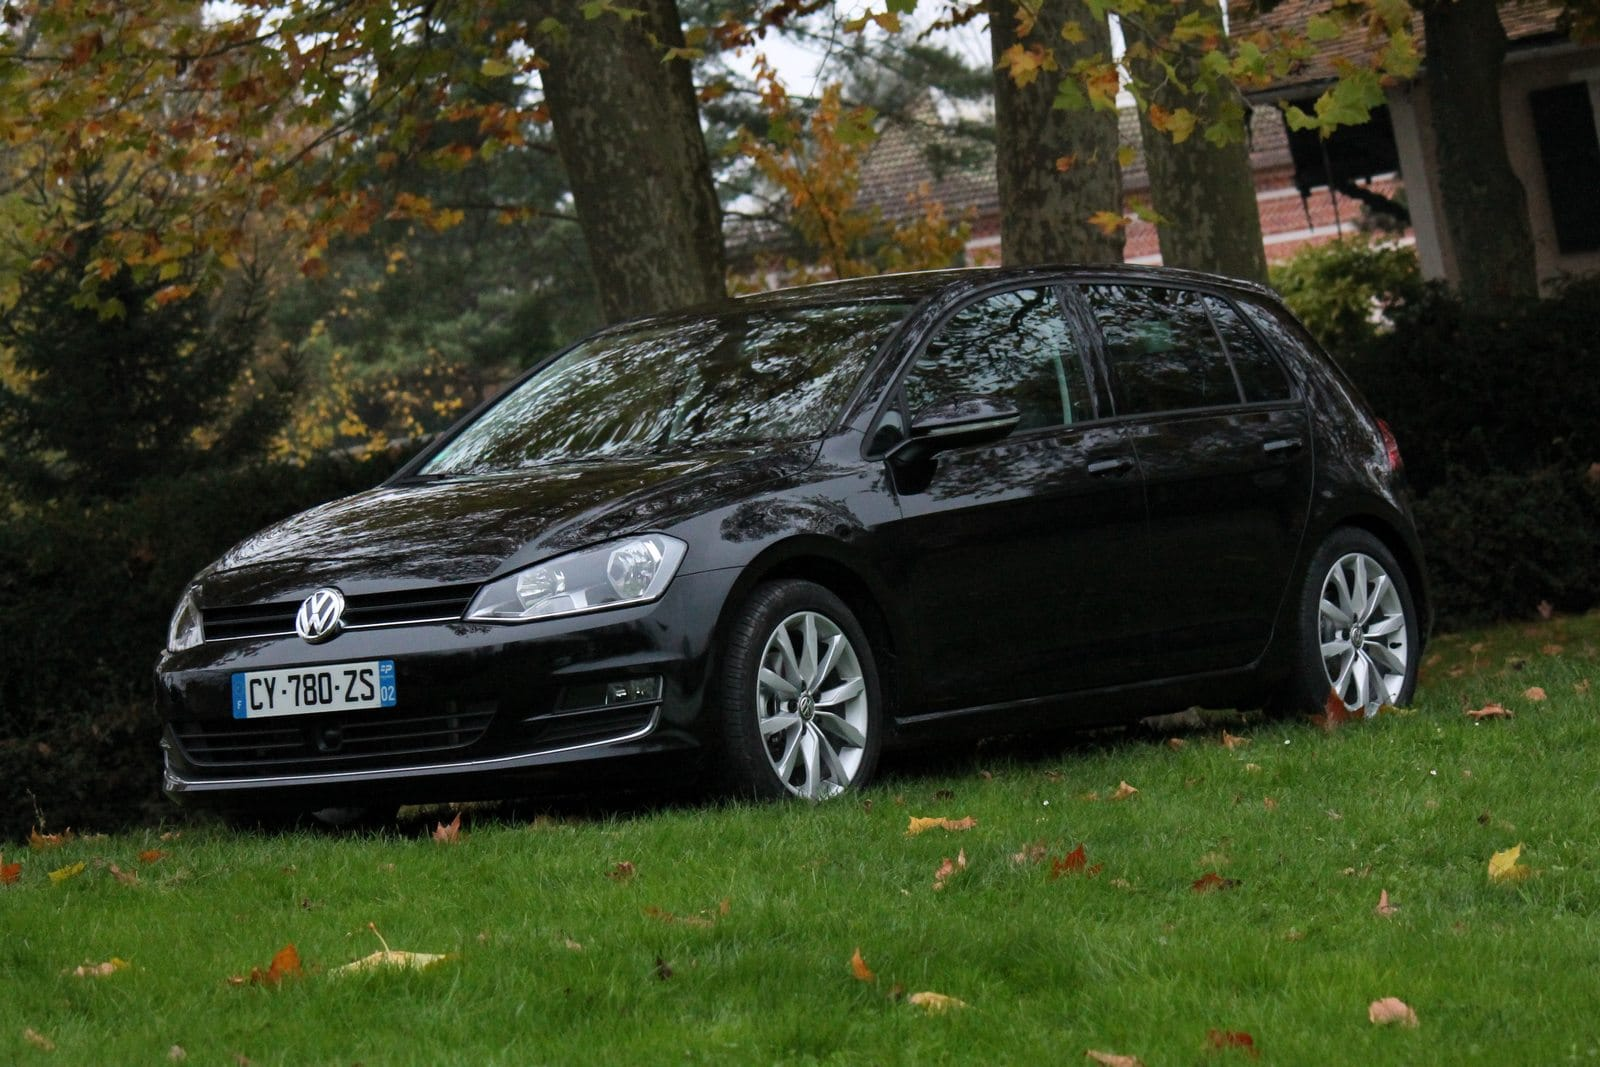 Essai golf gtd 2013 autos post for Garage volkswagen rennes occasion